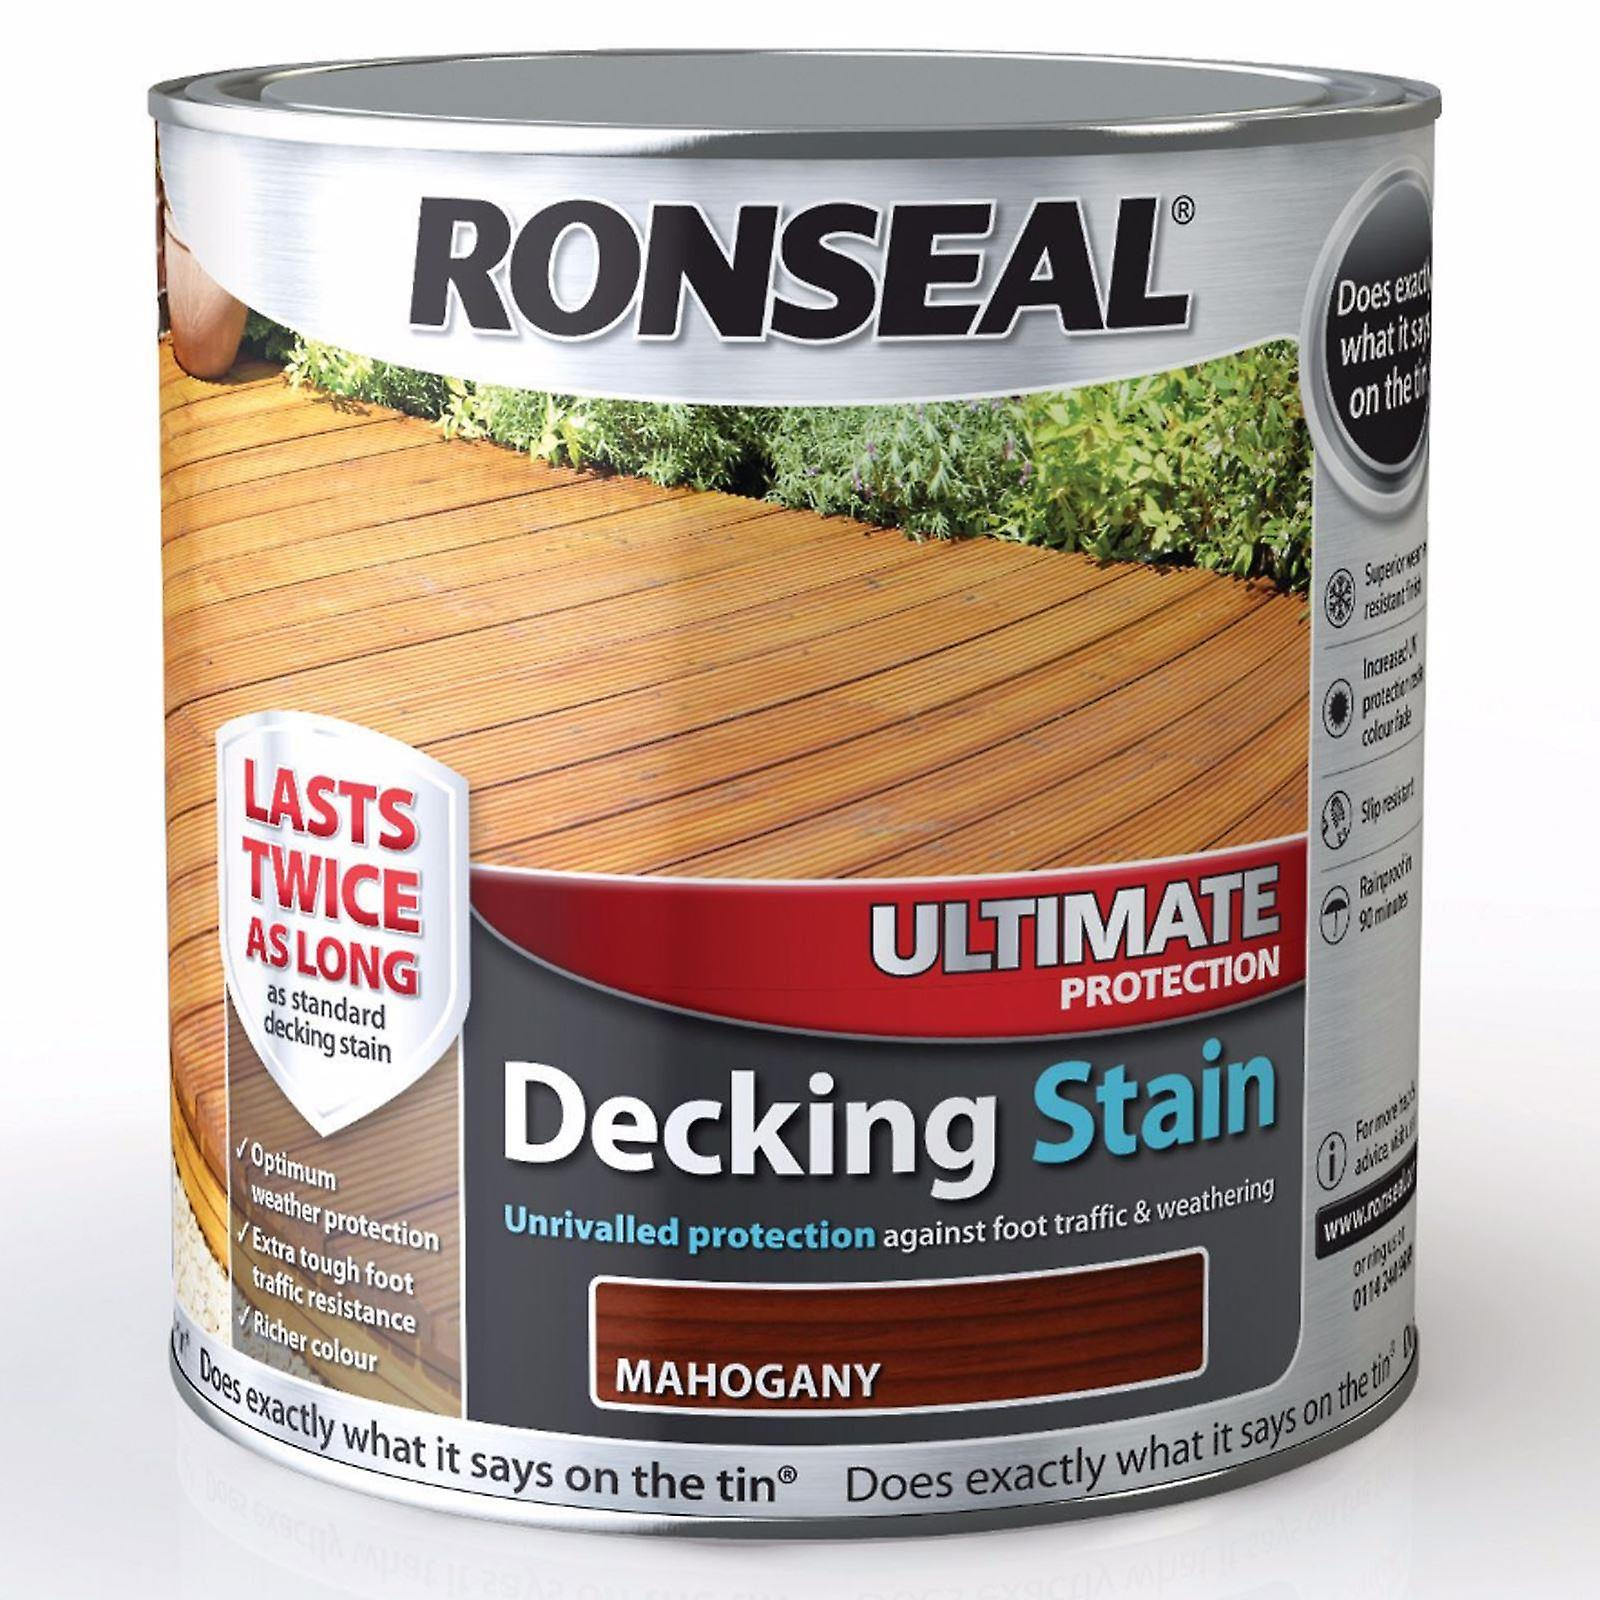 Ronseal 2.5 Litre Ultimate Protection Decking Stain - Mahogany